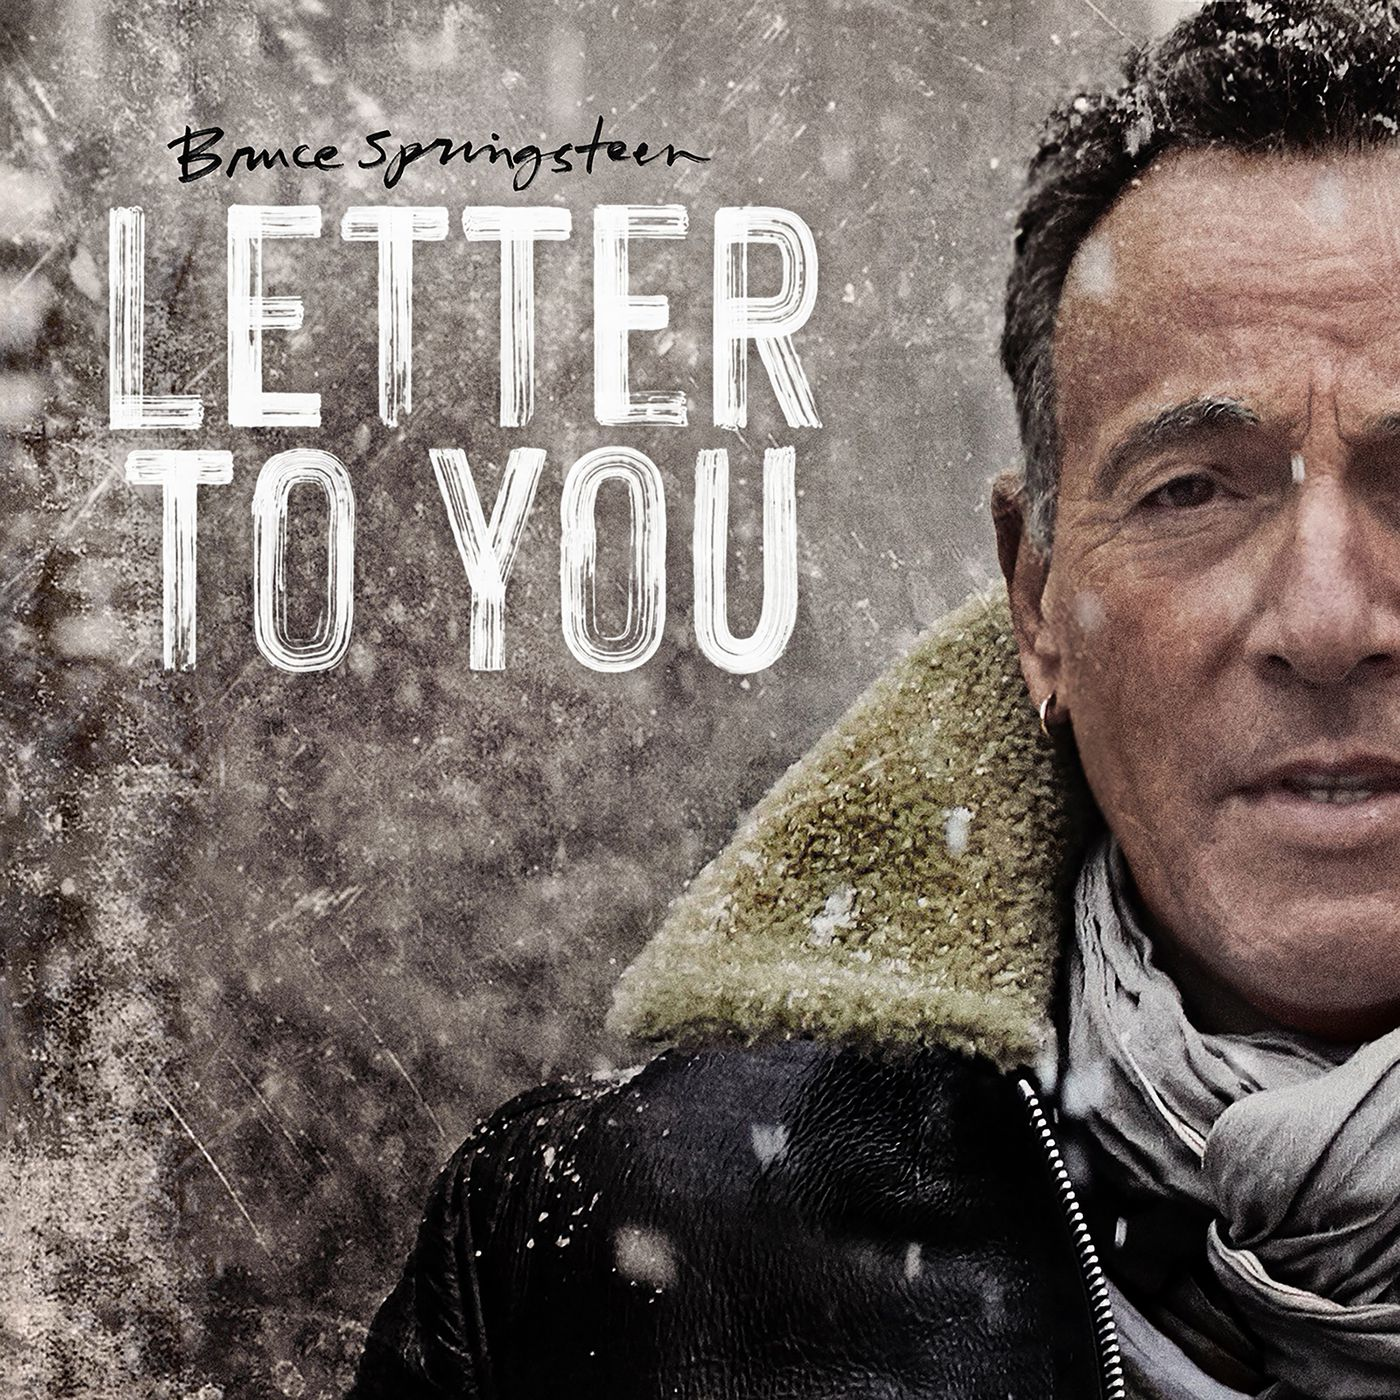 Bruce Springsteen 'Letter to You' released today, album out in October